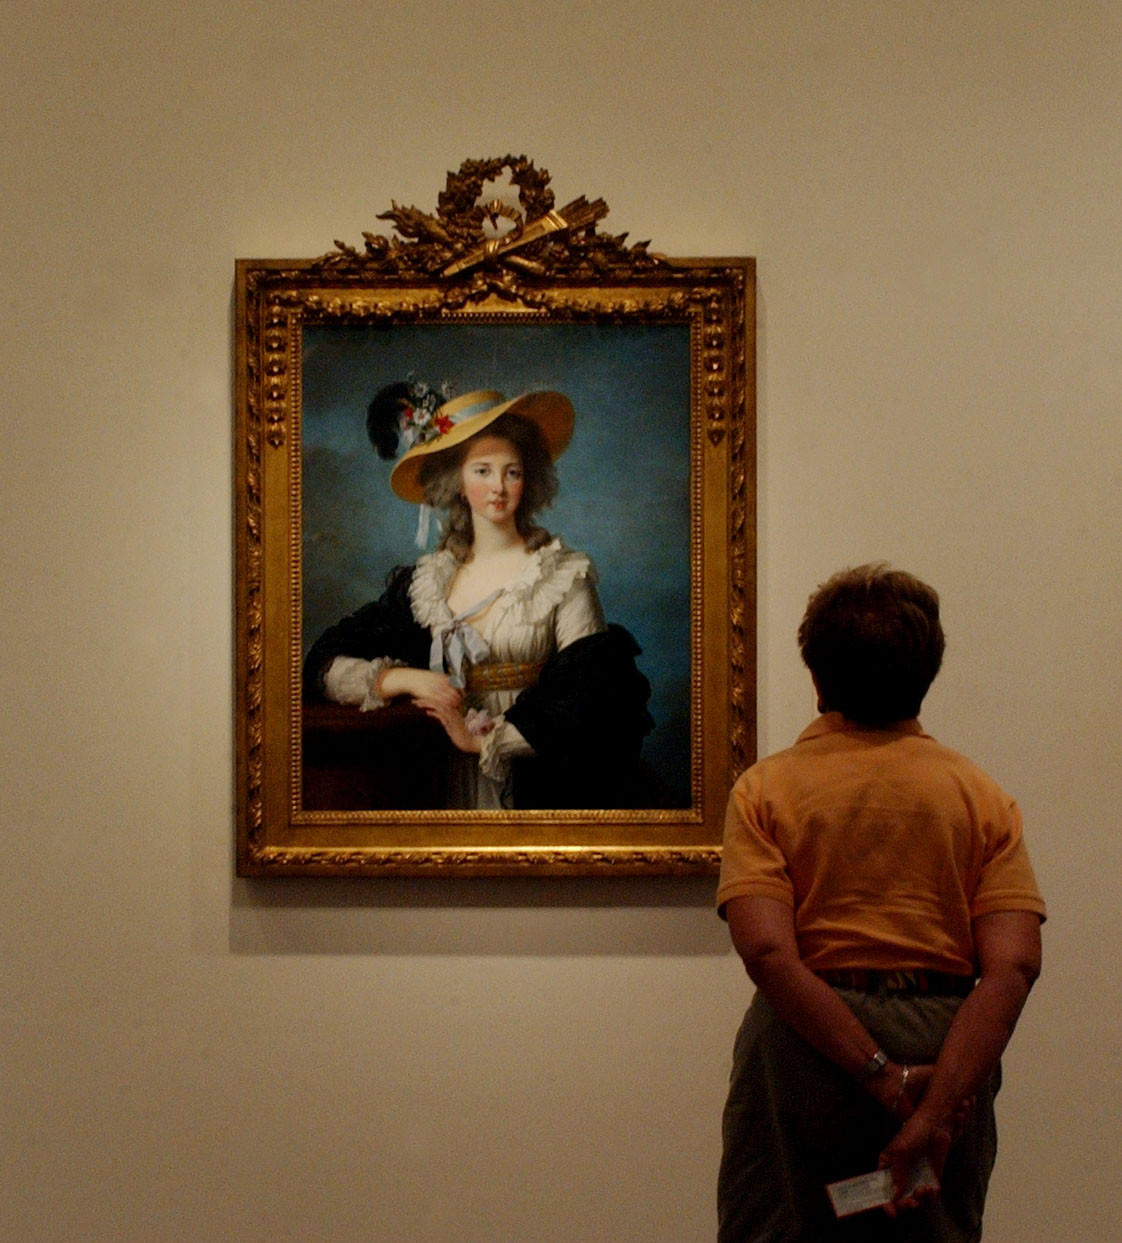 """Duchesse de Polignac in a Straw Hat"" hangs at the Wadsworth Atheneum Museum of Art in Hartford. It is e believed that the French painter, Elisabeth Louise Vigee Le Brun, created the portrait for her own private collection in 1782. The Atheneum has received a gift to be used to purchase pre-19th century European art."